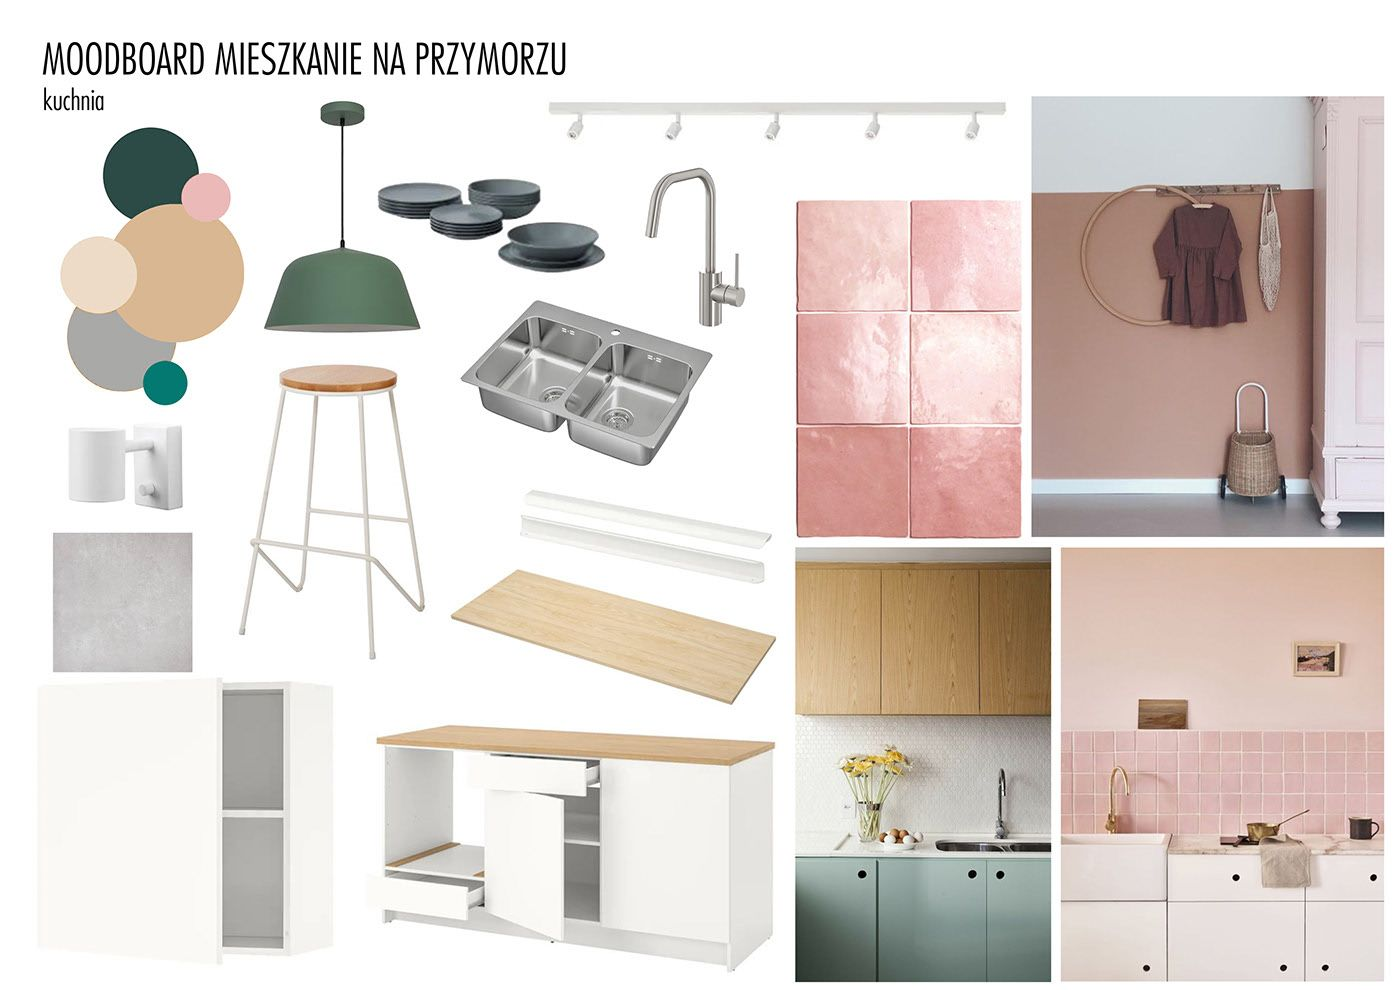 Interior Design Moodboard - 2020 on Behance